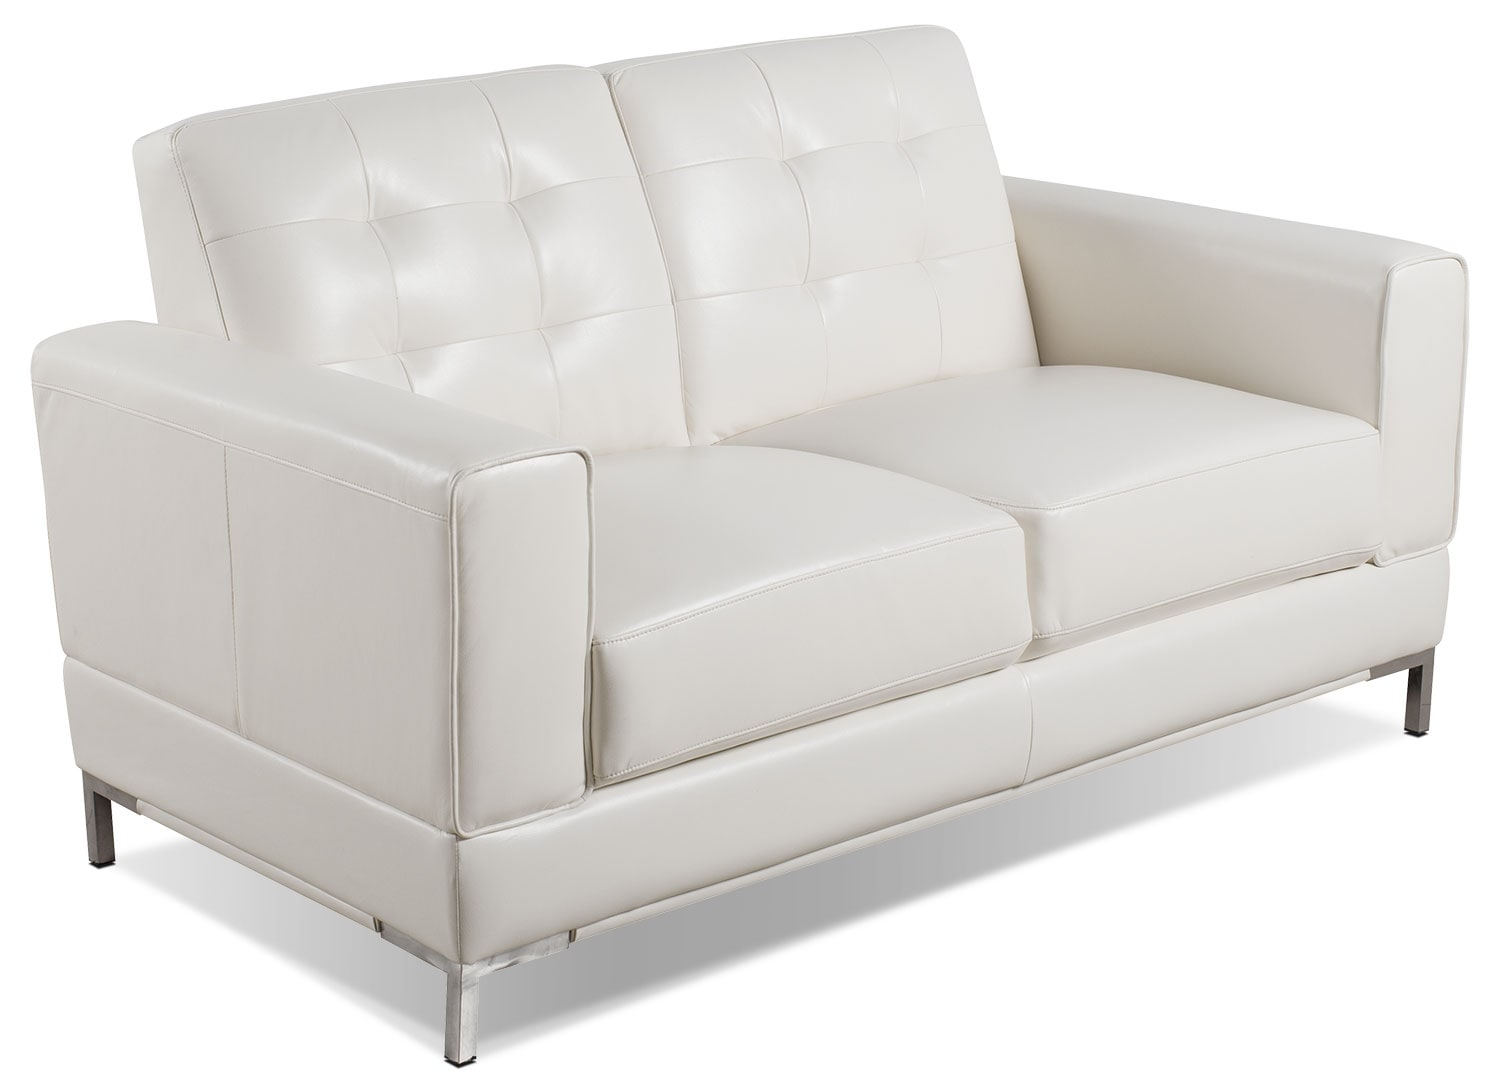 Myer Leather Look Fabric Loveseat Cream United Furniture Warehouse